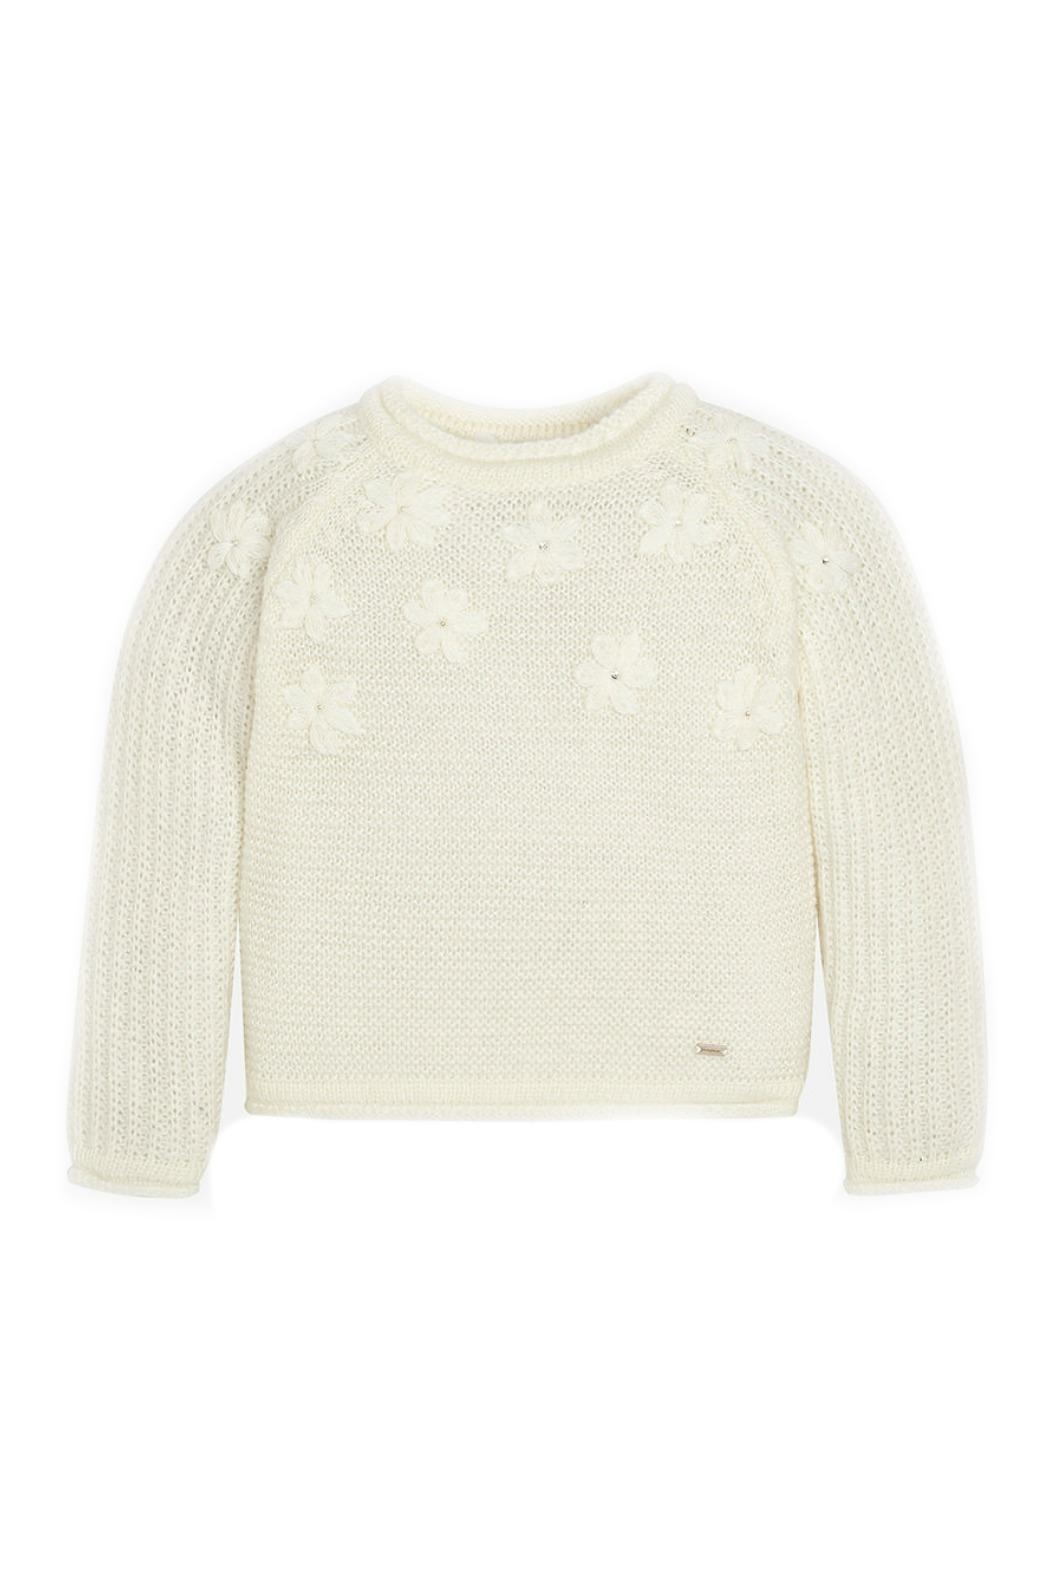 Mayoral Off-White-Embroidered-Daisy-Accent-Knit-Sweater - Main Image